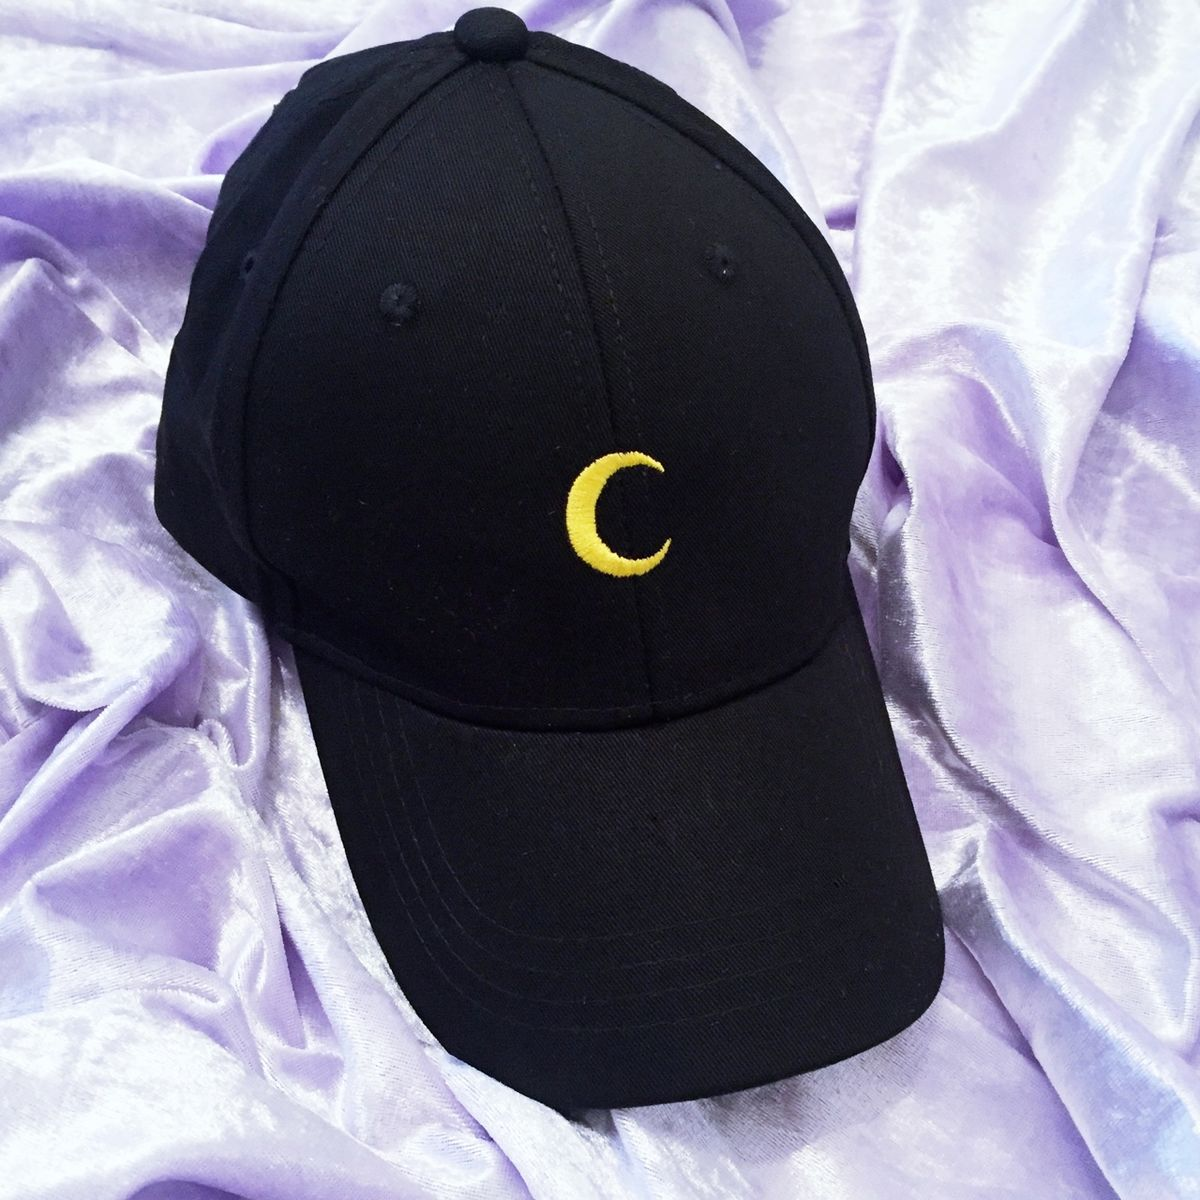 Moon Cap - product images  of